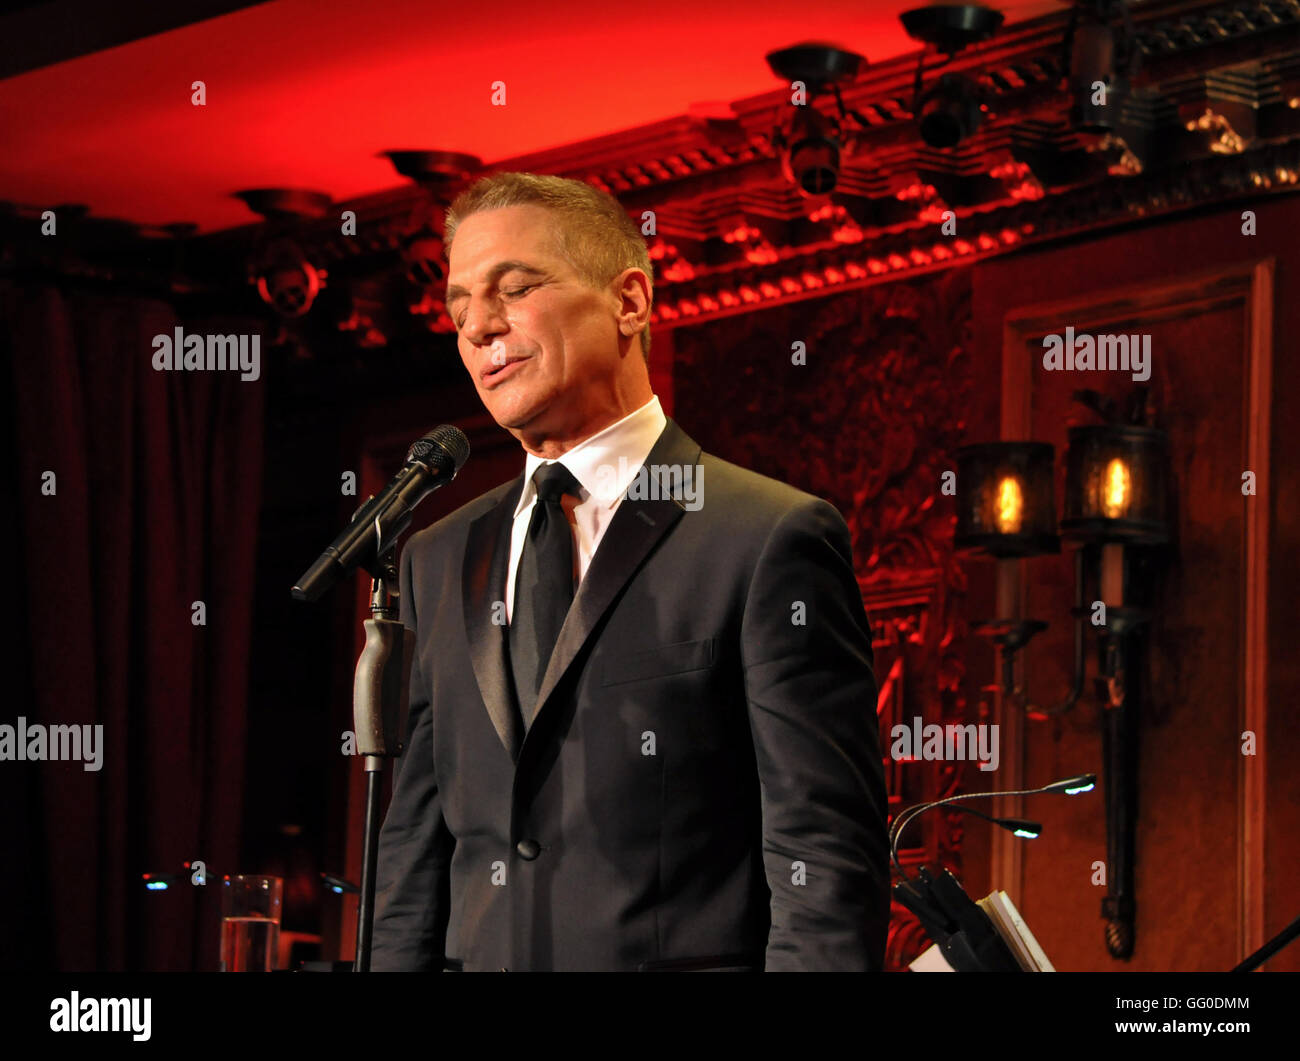 New York, NY. July 26, 2016. Tony Danza in Standards & Stories concert debut at Feinstein's/54 Below.  © - Stock Image